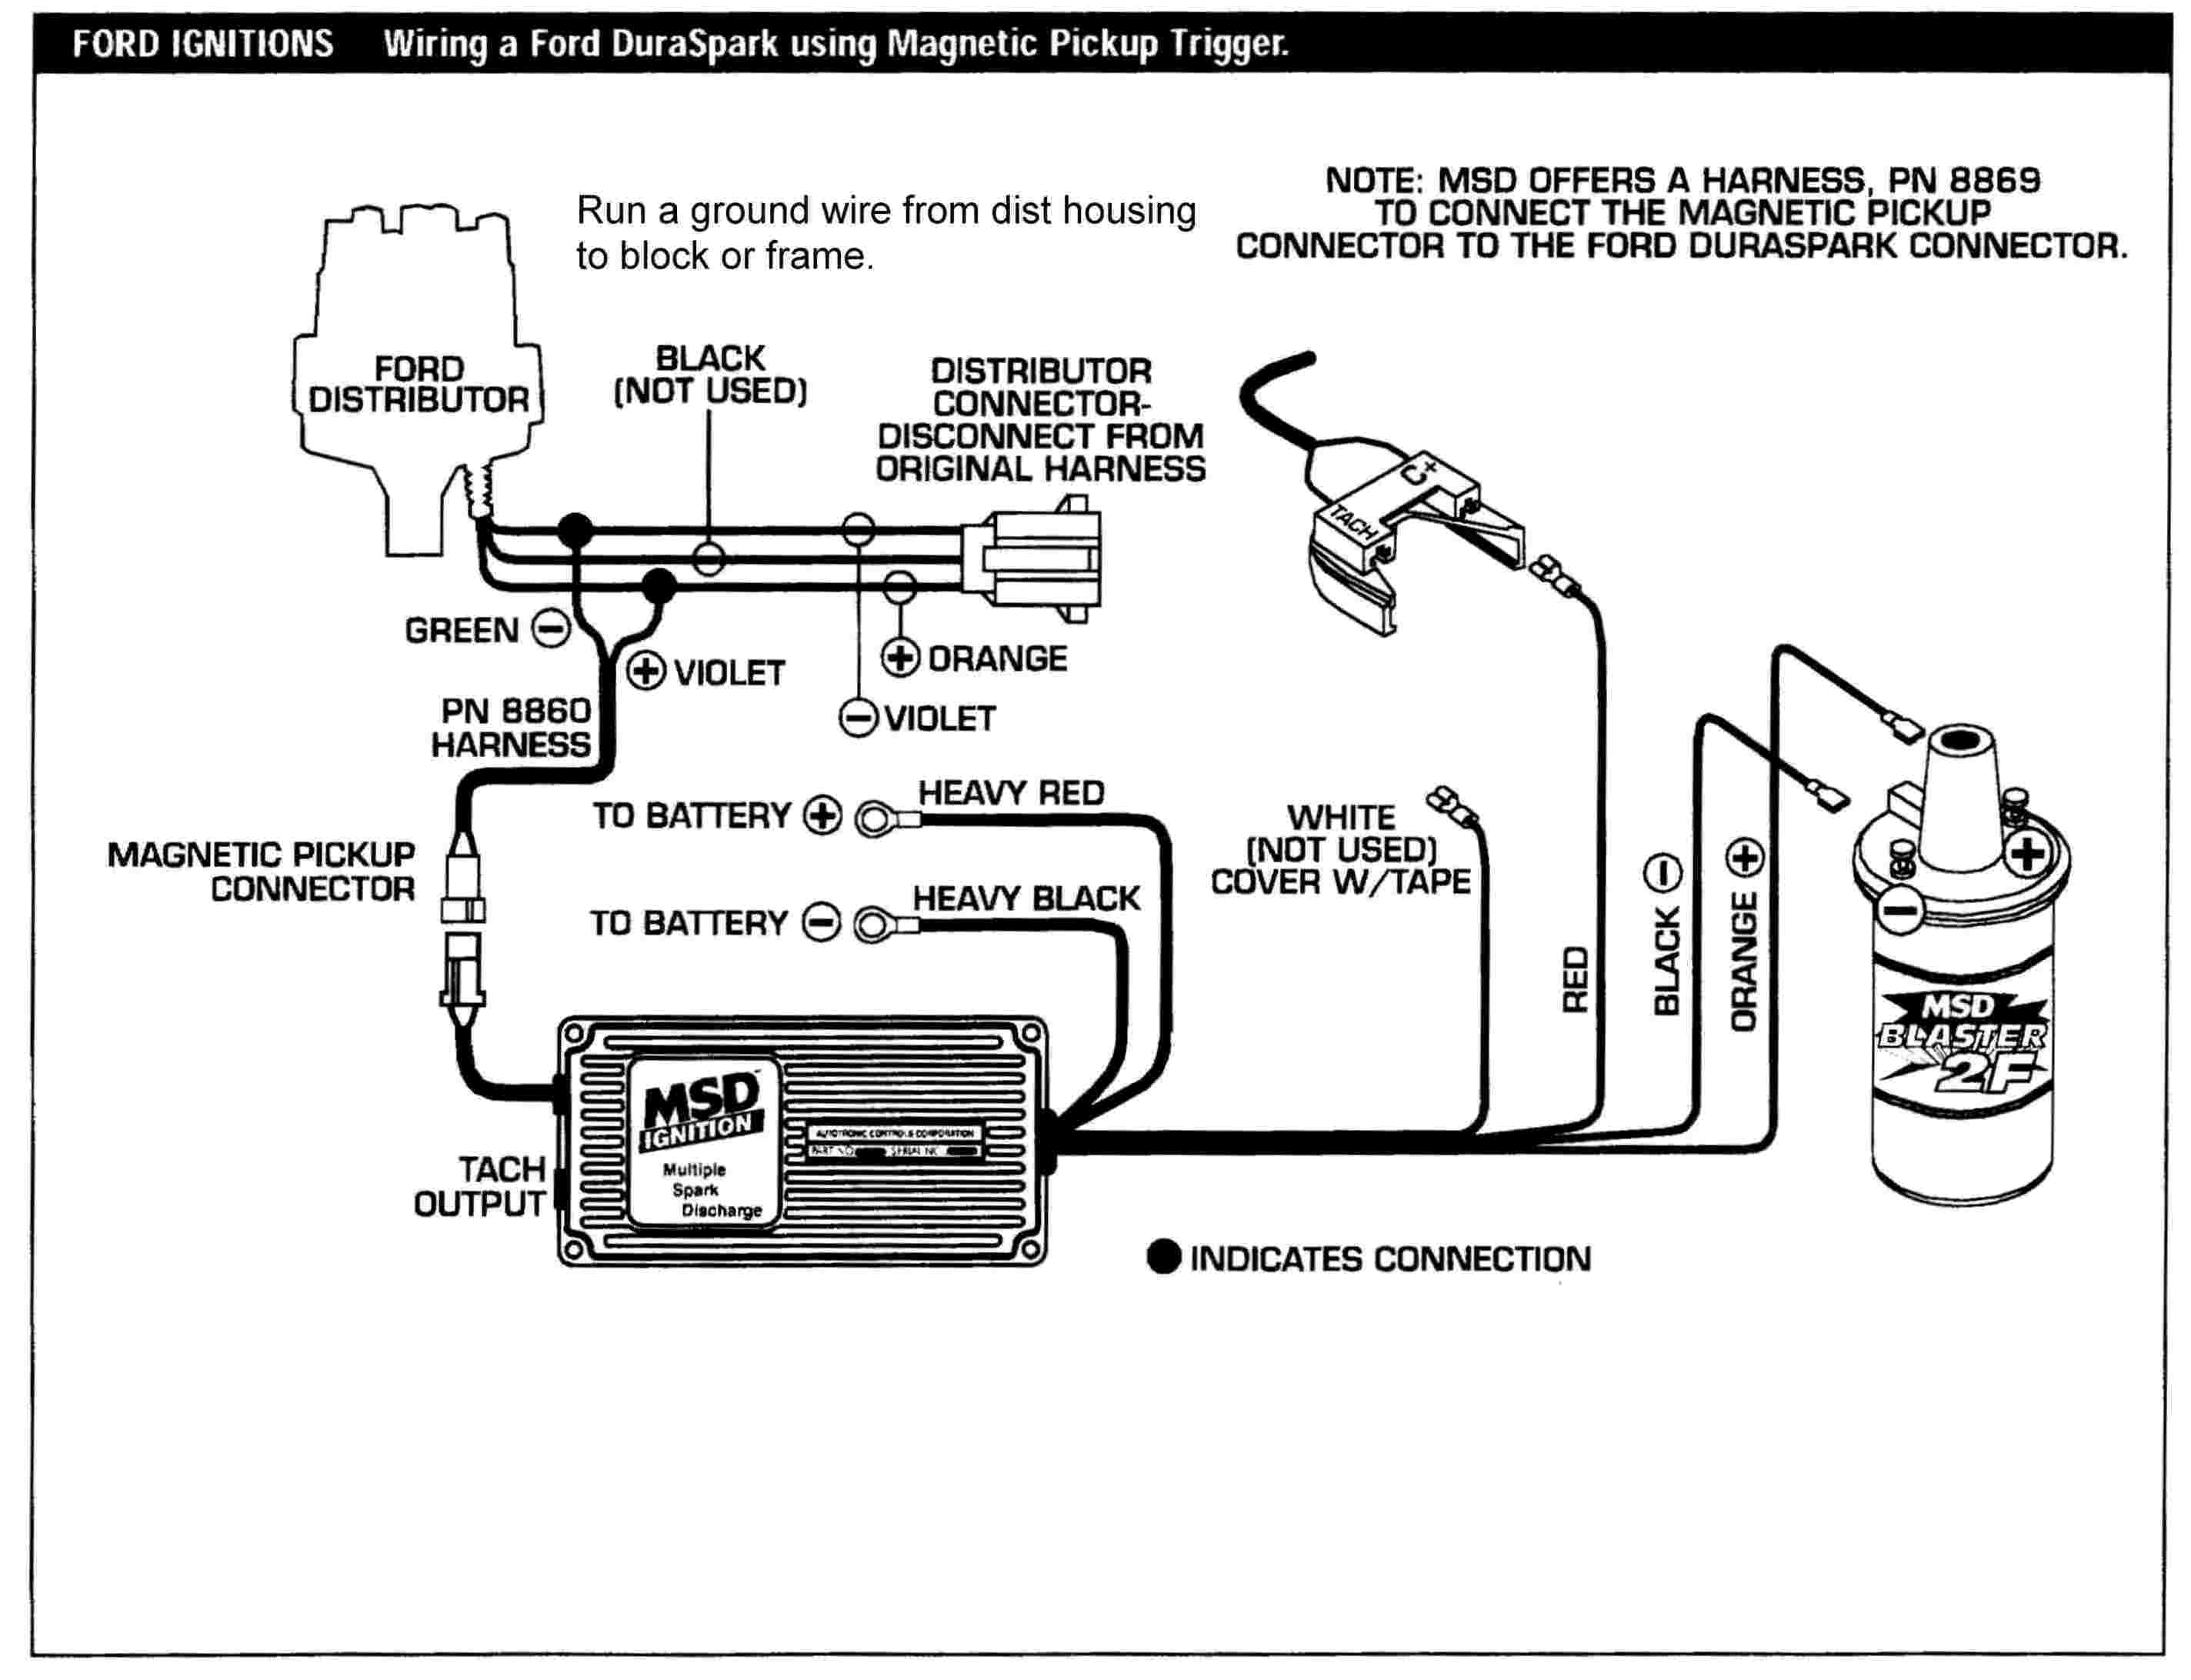 msd 6ls wiring harness ls ignition coil wiring diagram ls msd ignition wiring diagram a images ford coil wiring diagram ignition wiring diagram further msd 6al